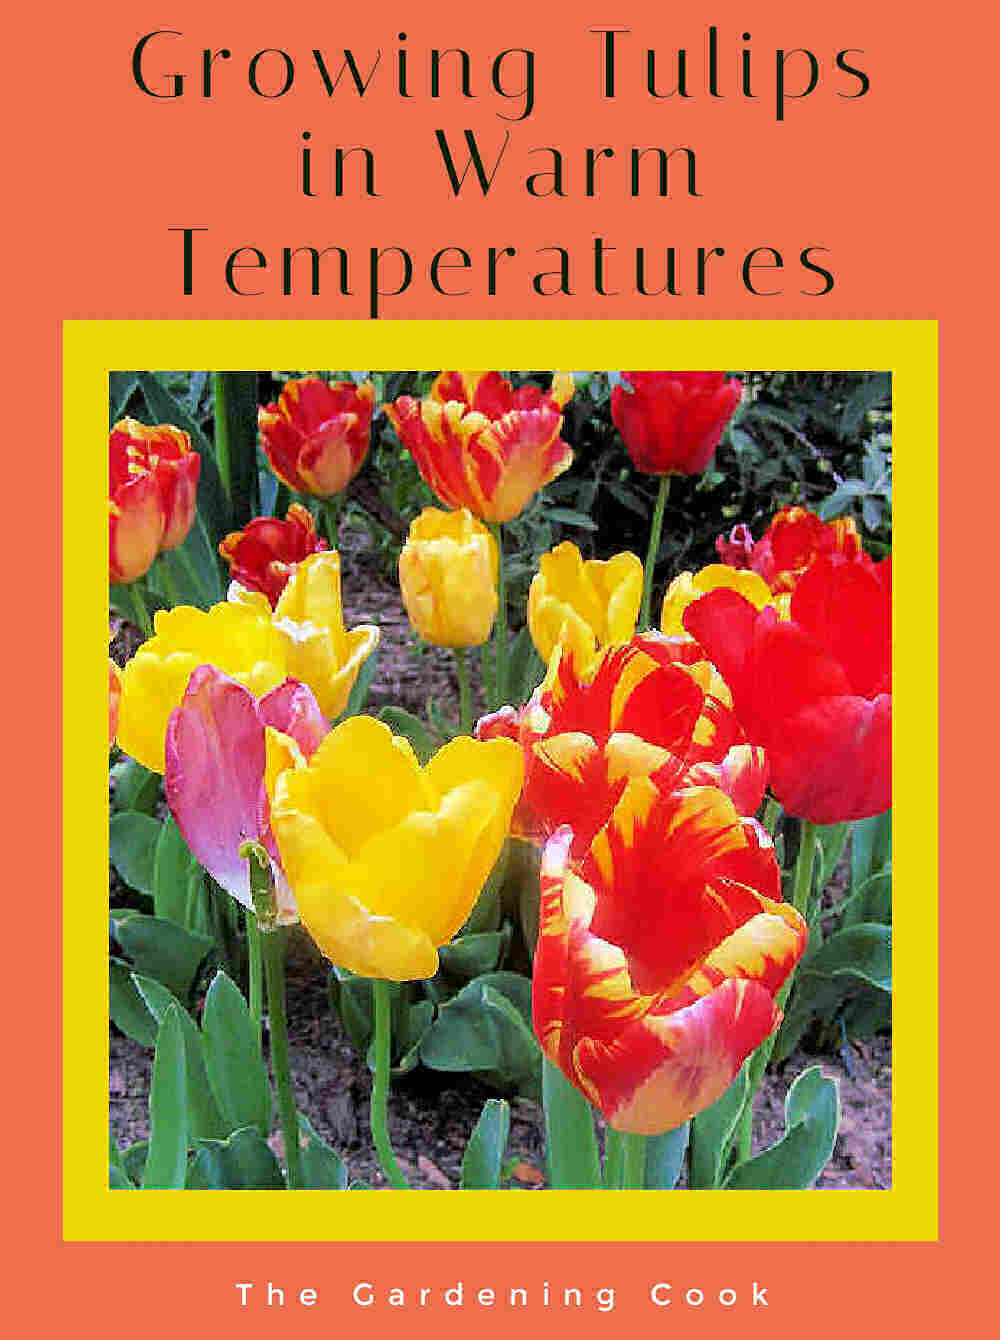 Bunch of colorful tulips with words Growing tulips in warm temperatures.